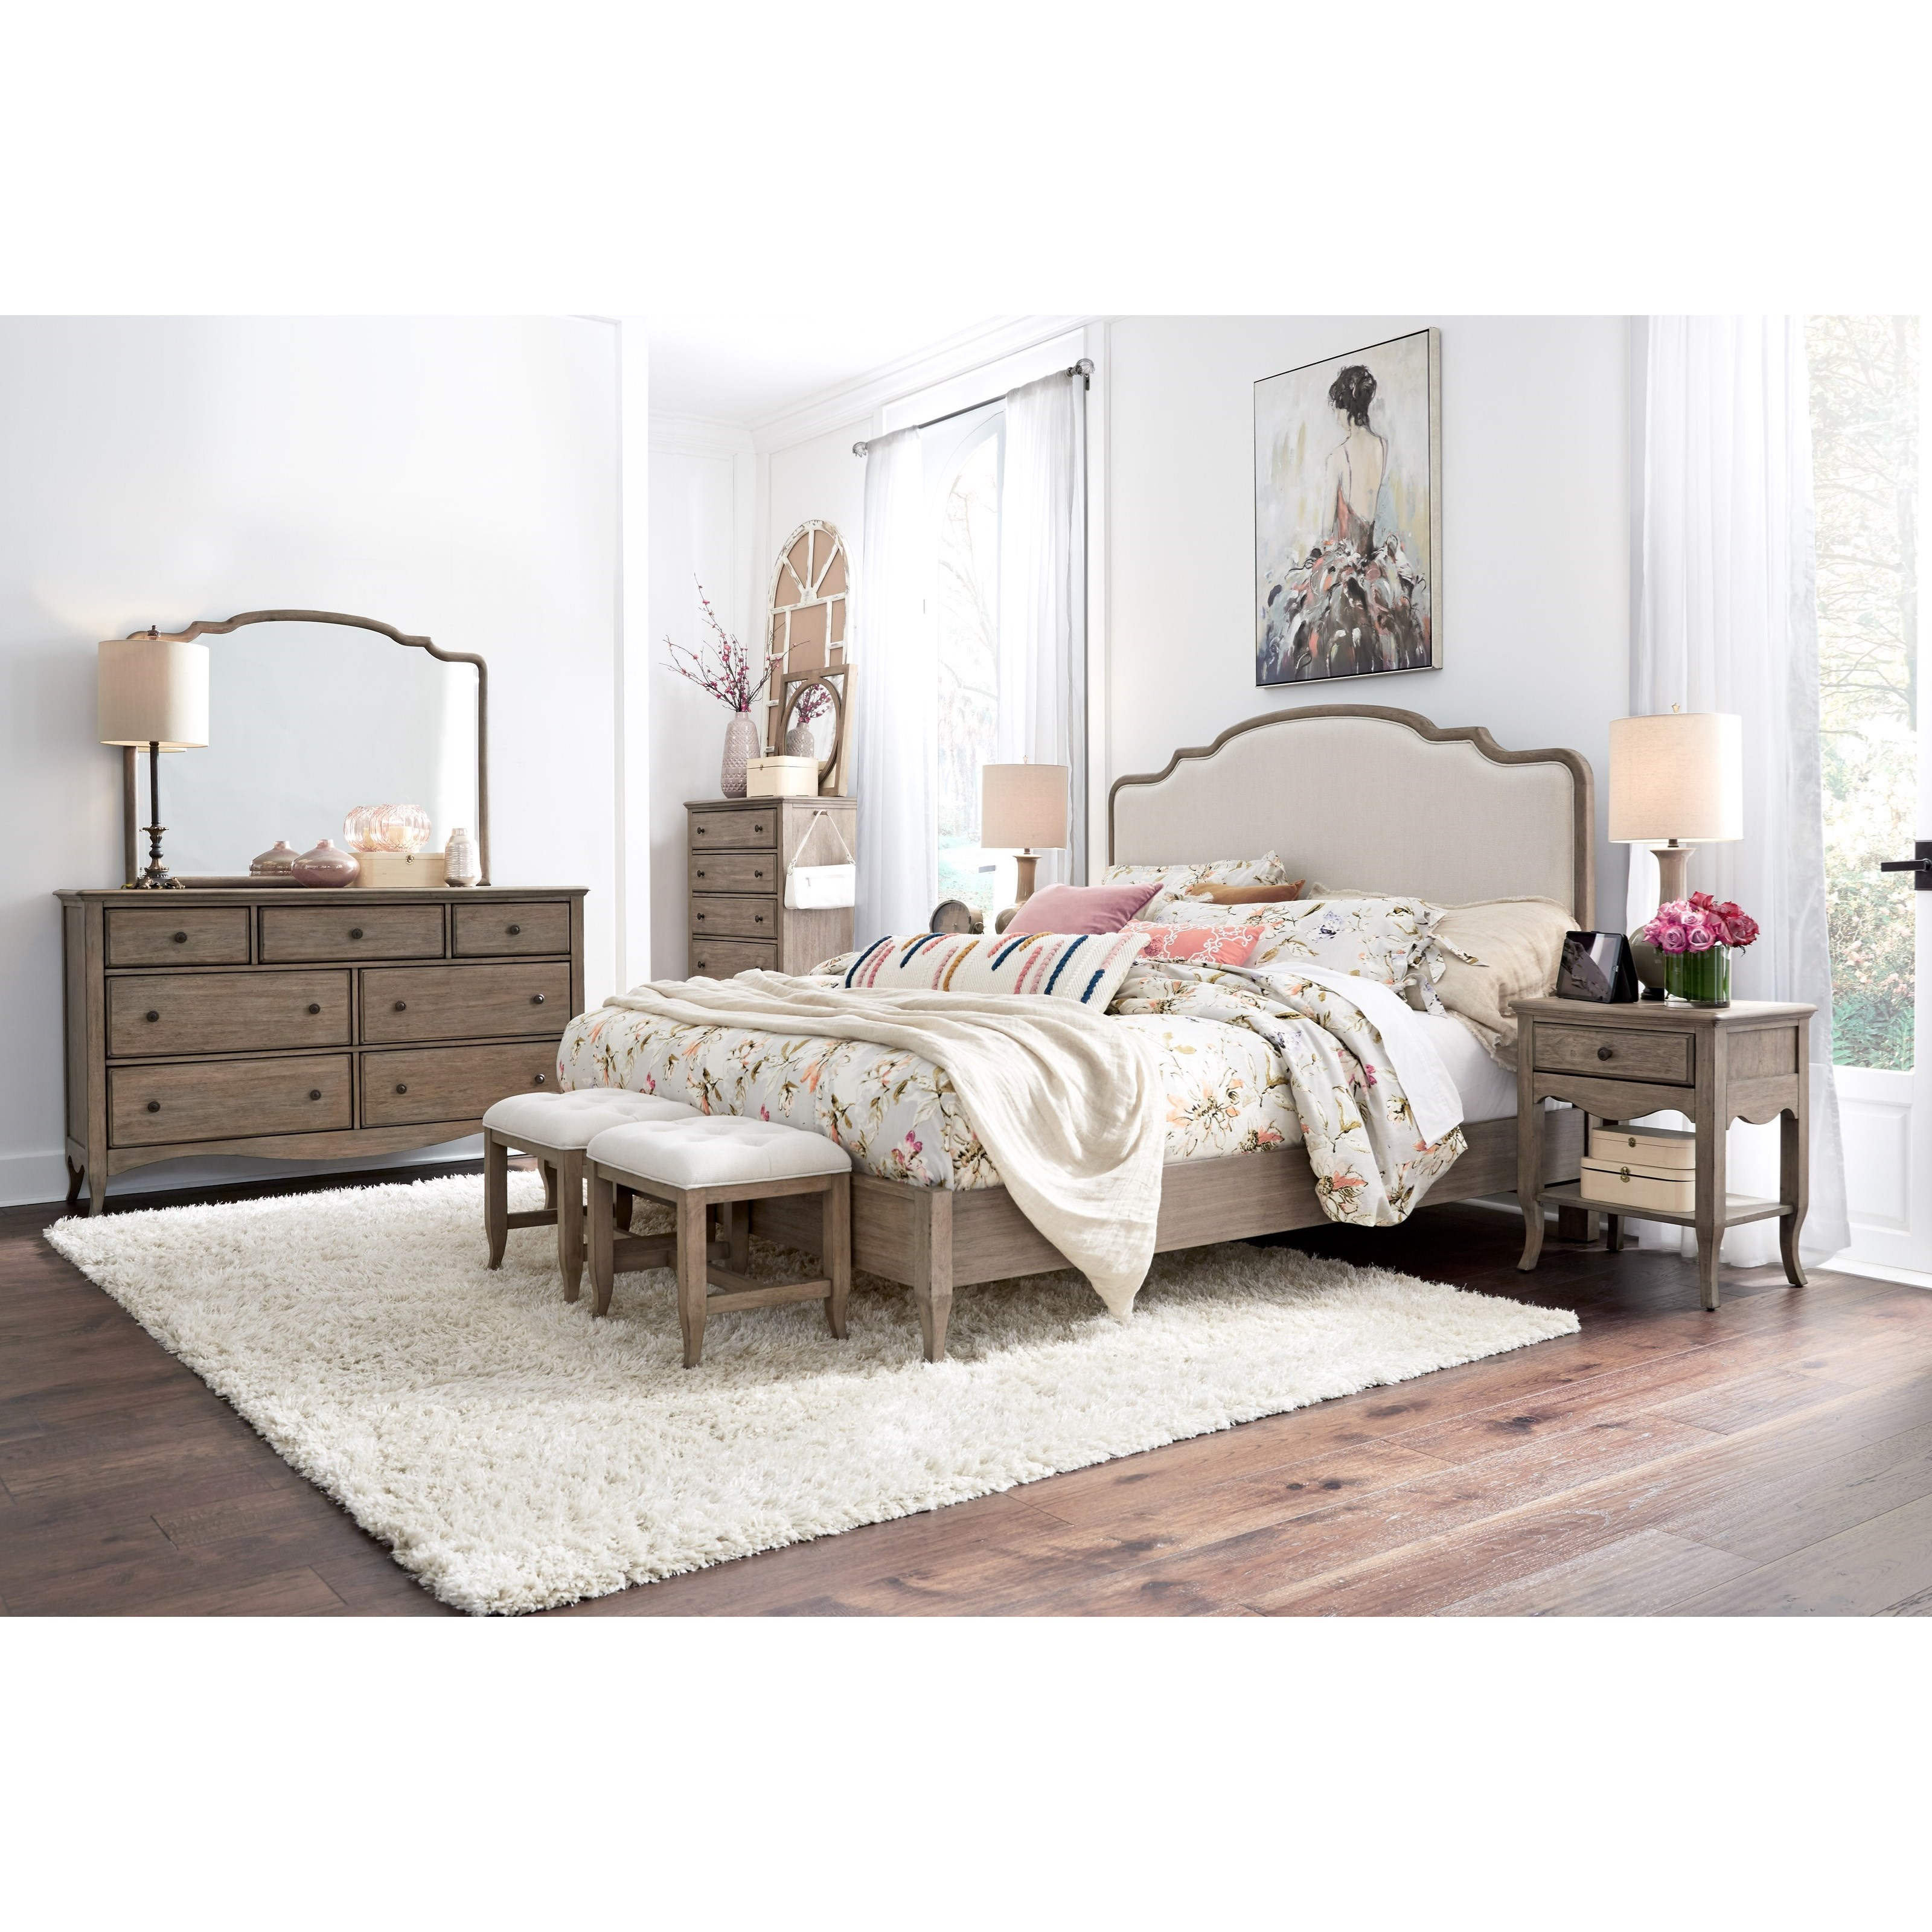 Provence Queen Bedroom Group by Aspenhome at Stoney Creek Furniture